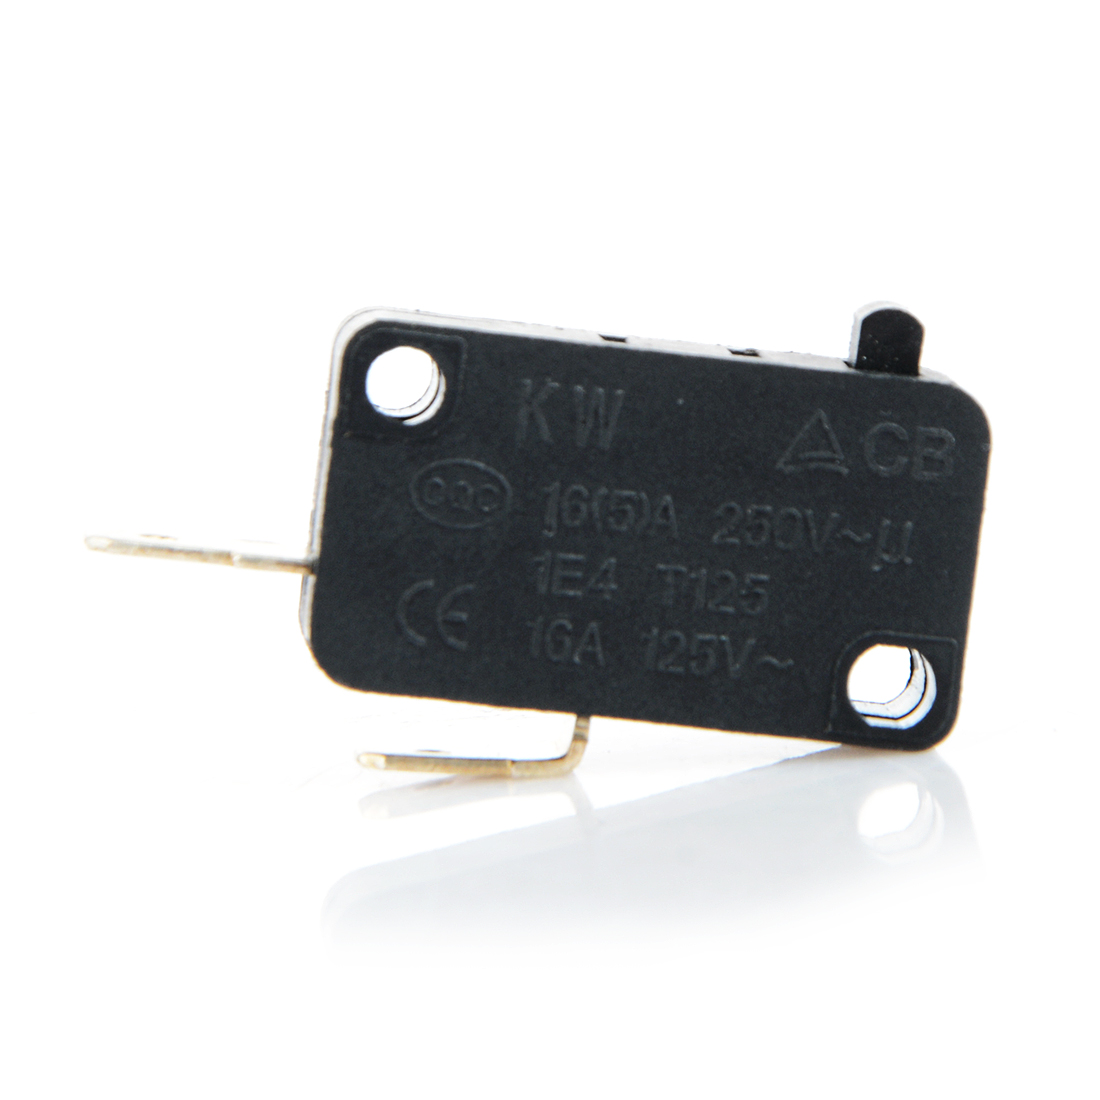 Lighting Accessories Lights & Lighting Dashing 5pcs Microwave Oven Washing Machine Rice Cooker Pot Micro Switch 2pins 1 No Micro Switches 15a 250v